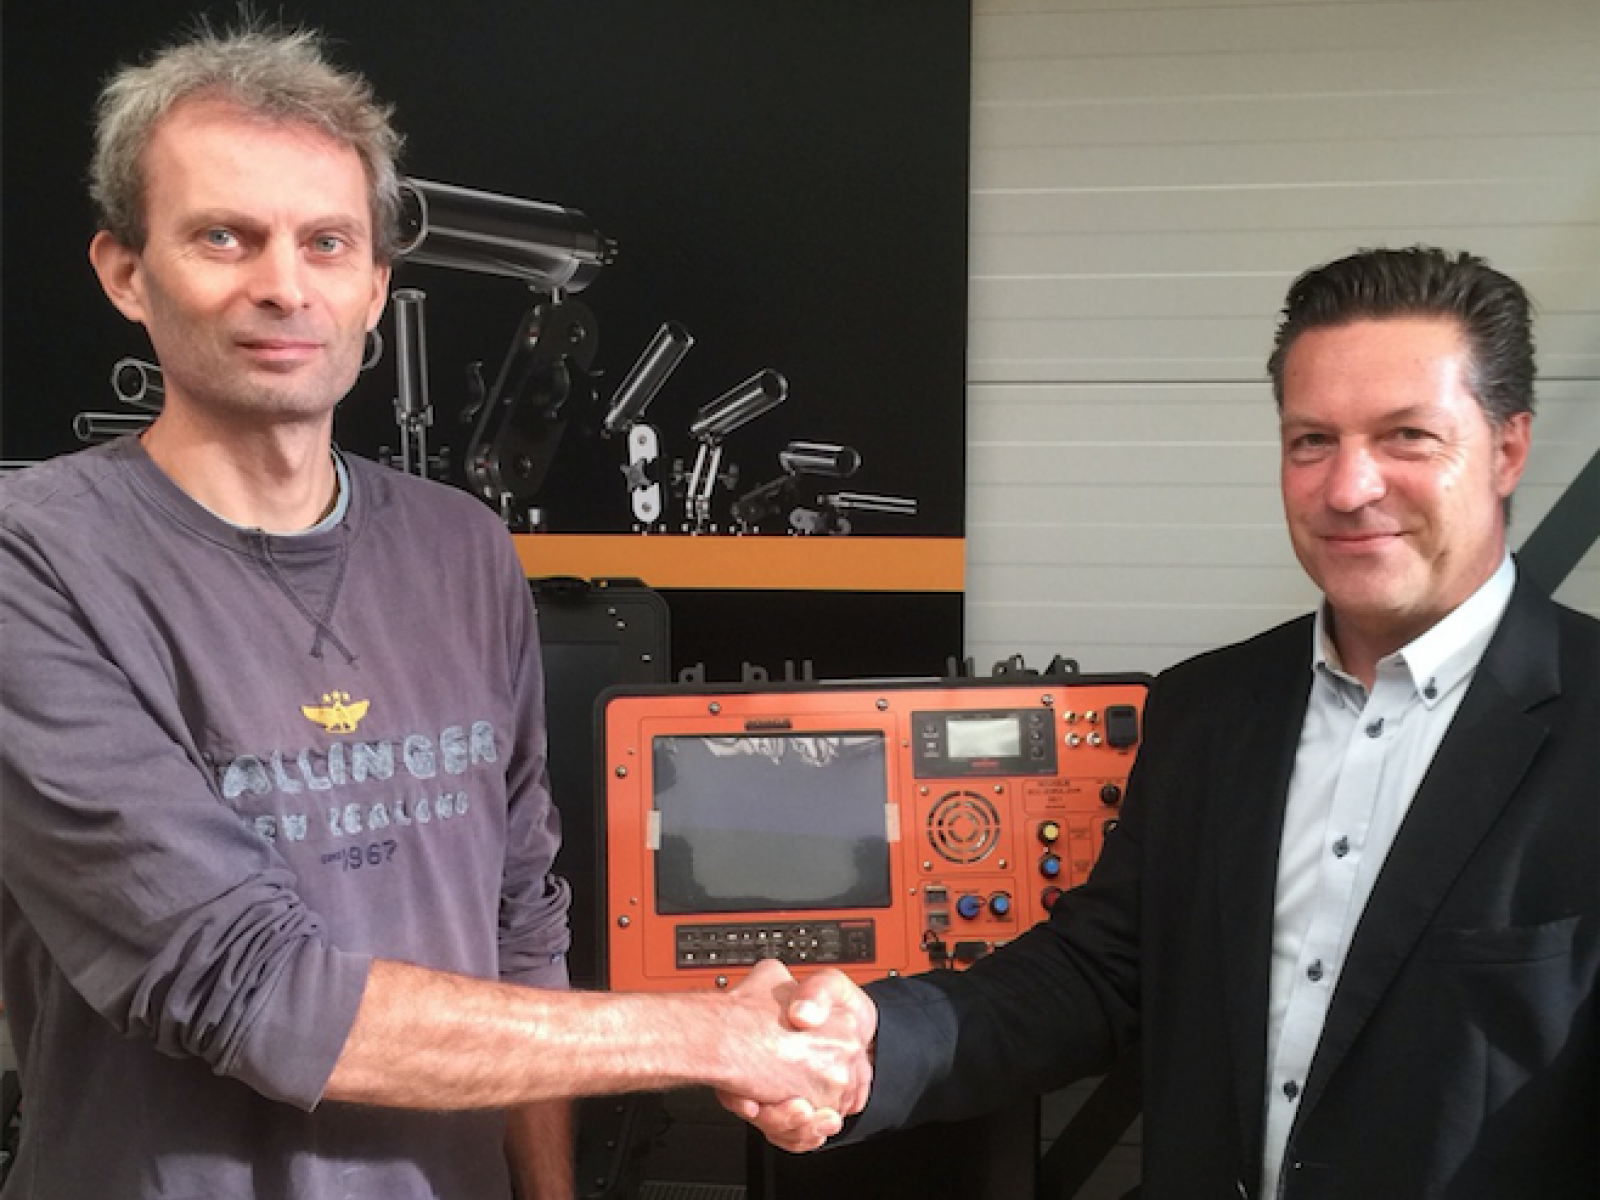 nCentric closes deal with Seascape to supply cutting edge wireless technology